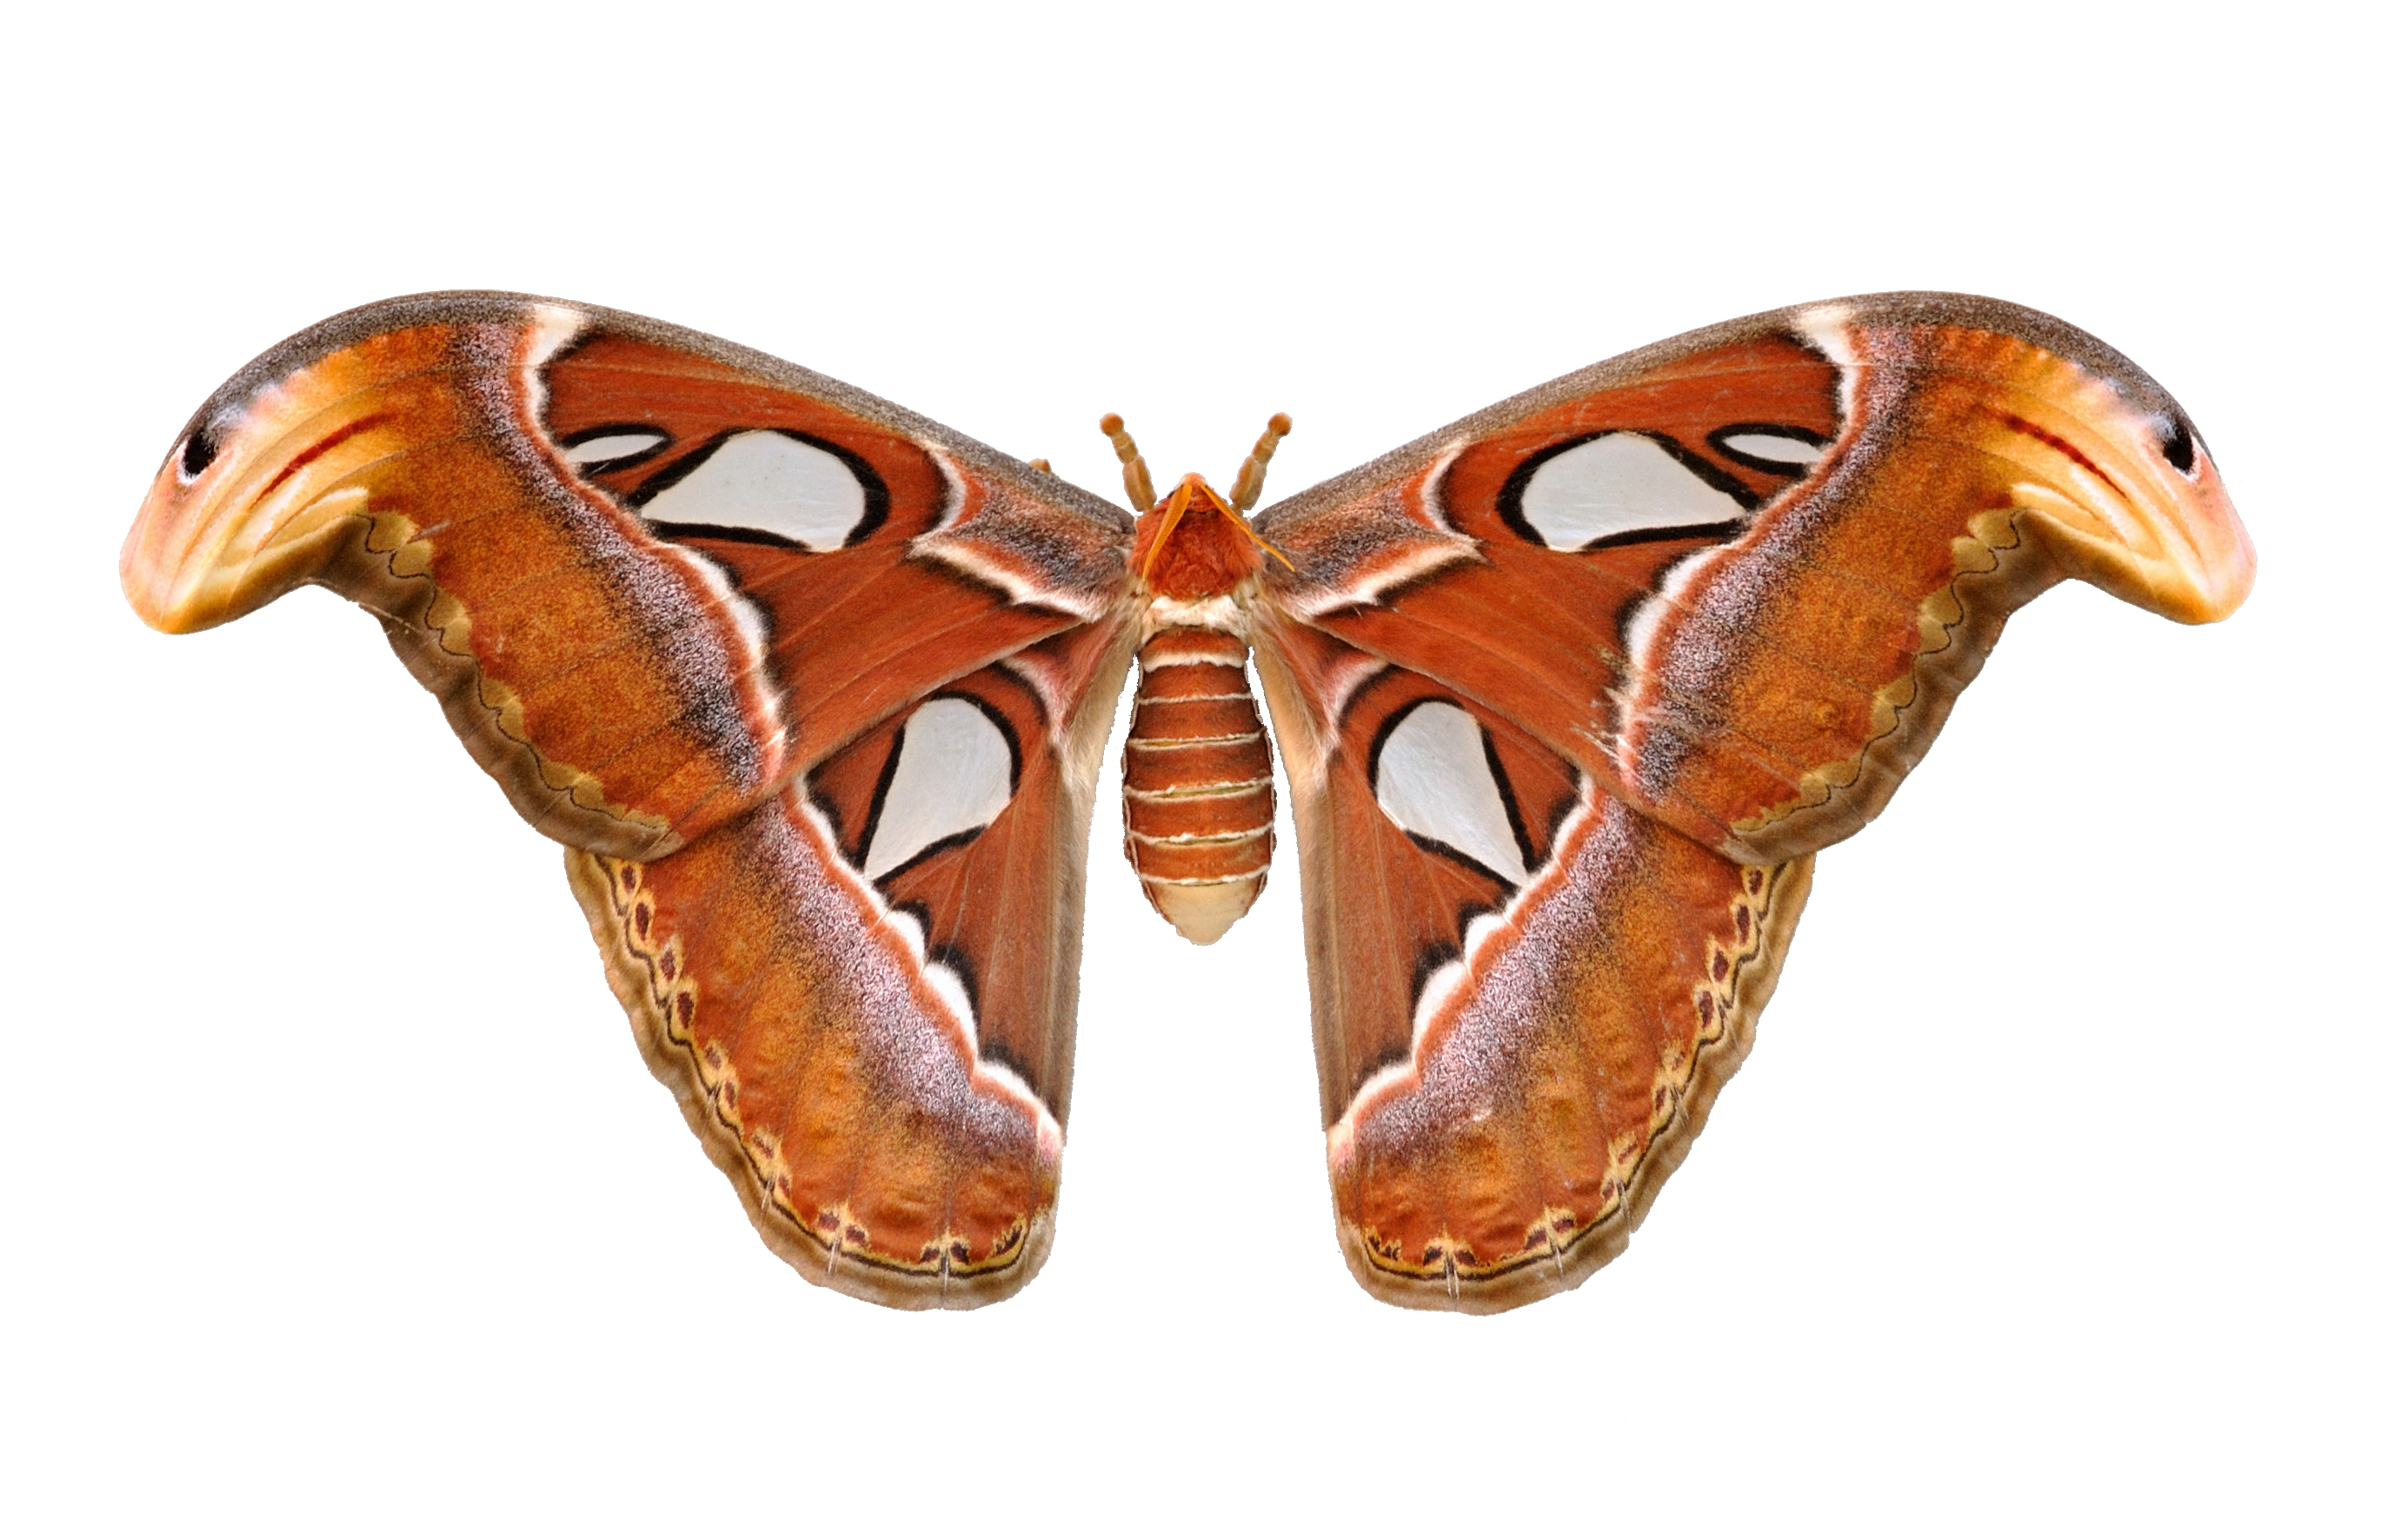 Attacus atlas  Wikispecies